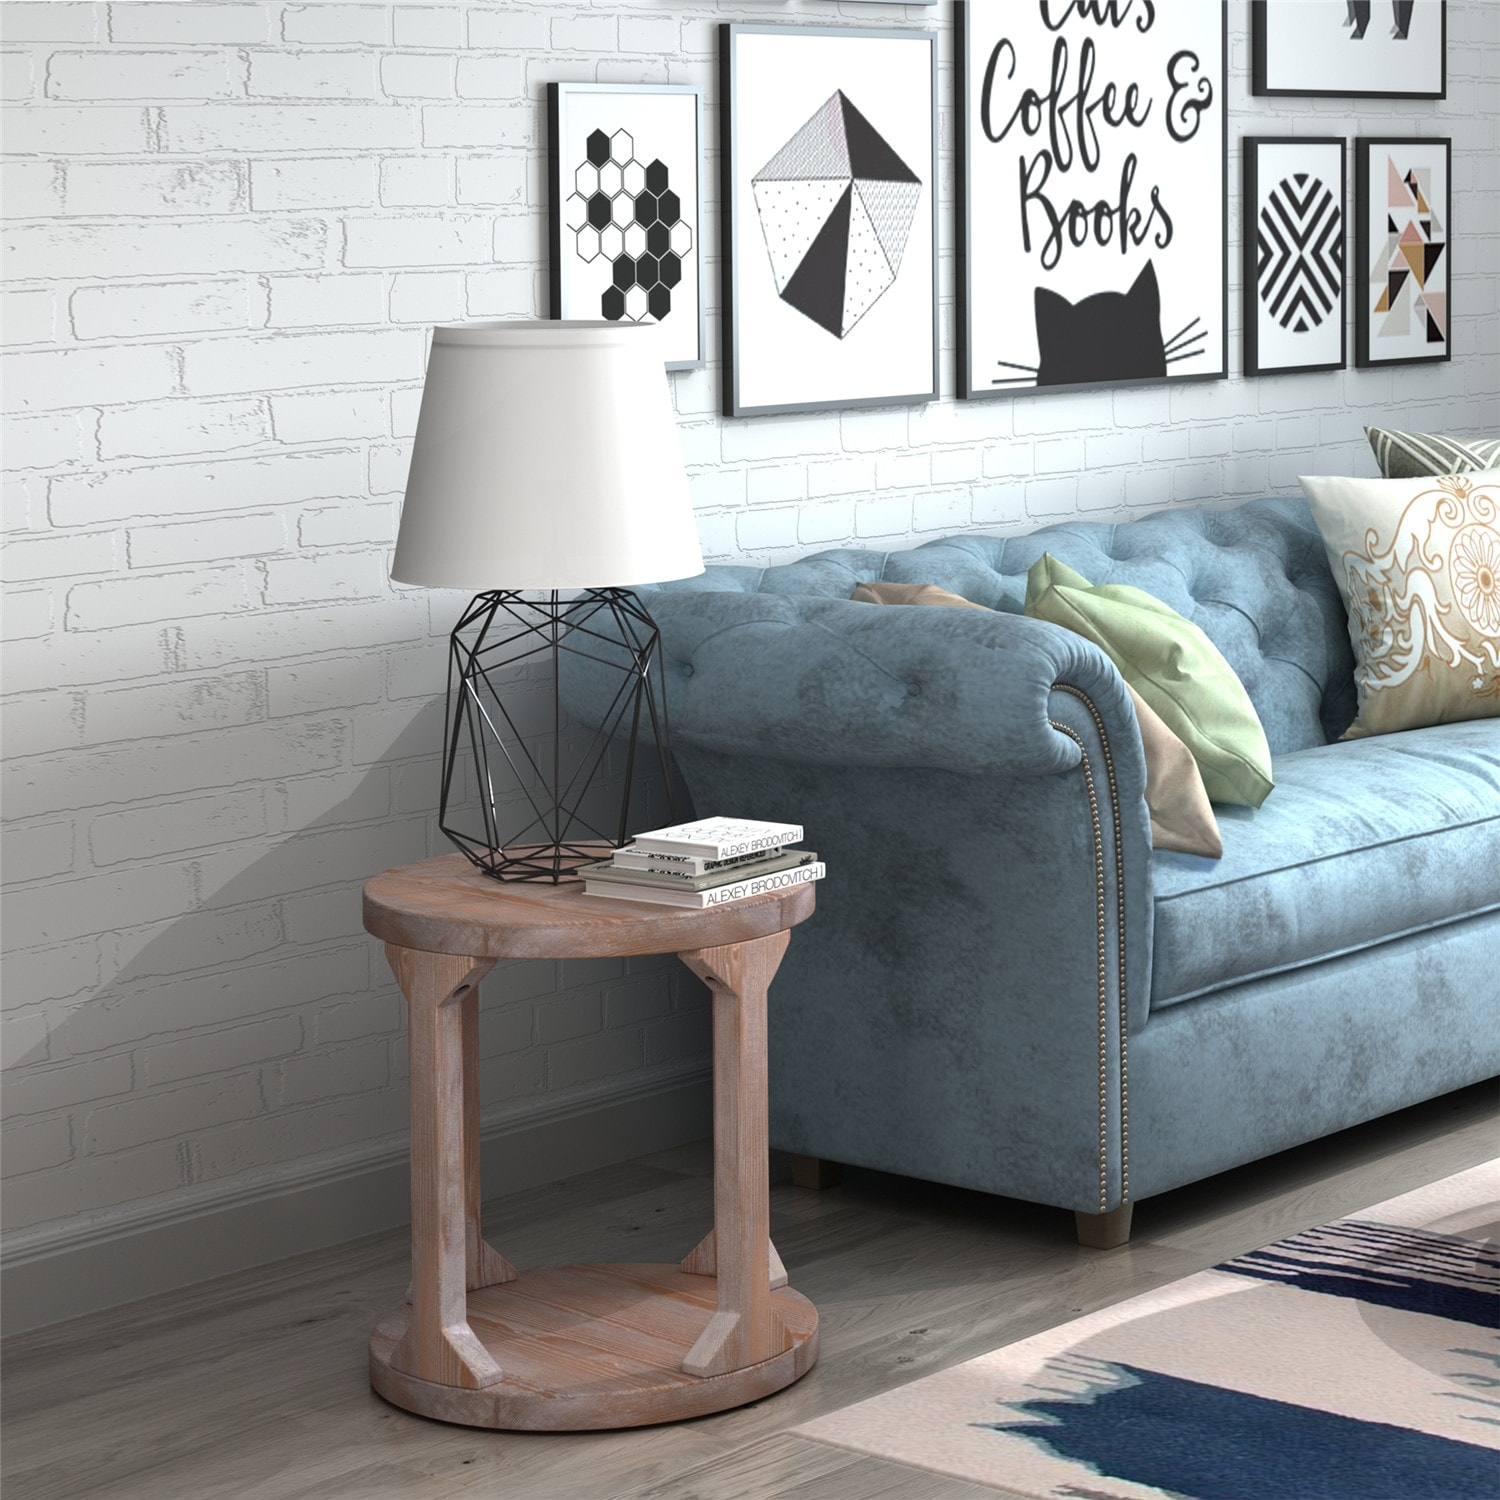 Round Rustic Coffee Table Solid Wood MDF Coffee Table for Living Room